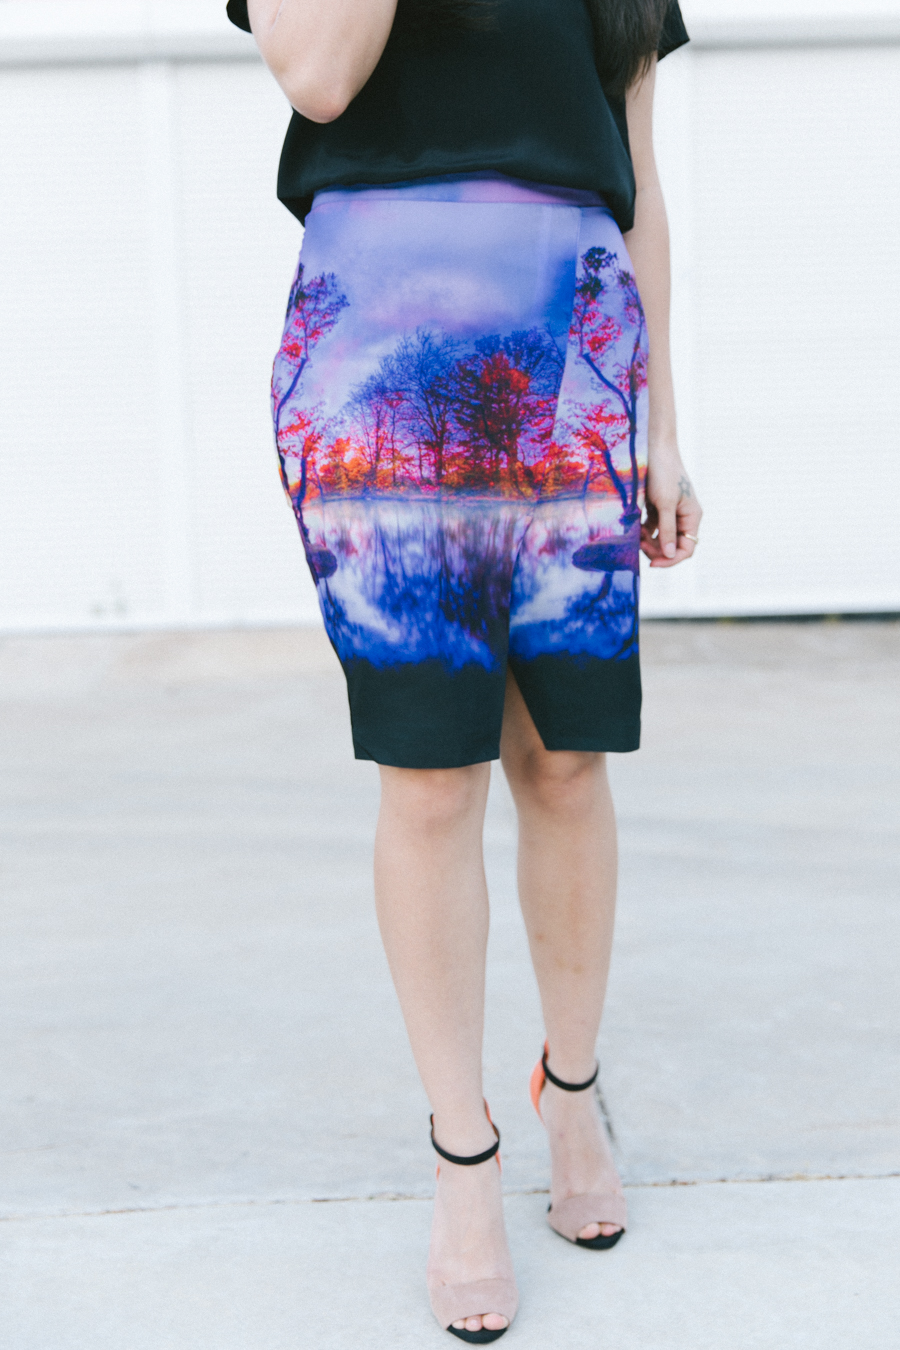 Statement print skirt with leather jacket over the shoulders. FATE clothing skirt.